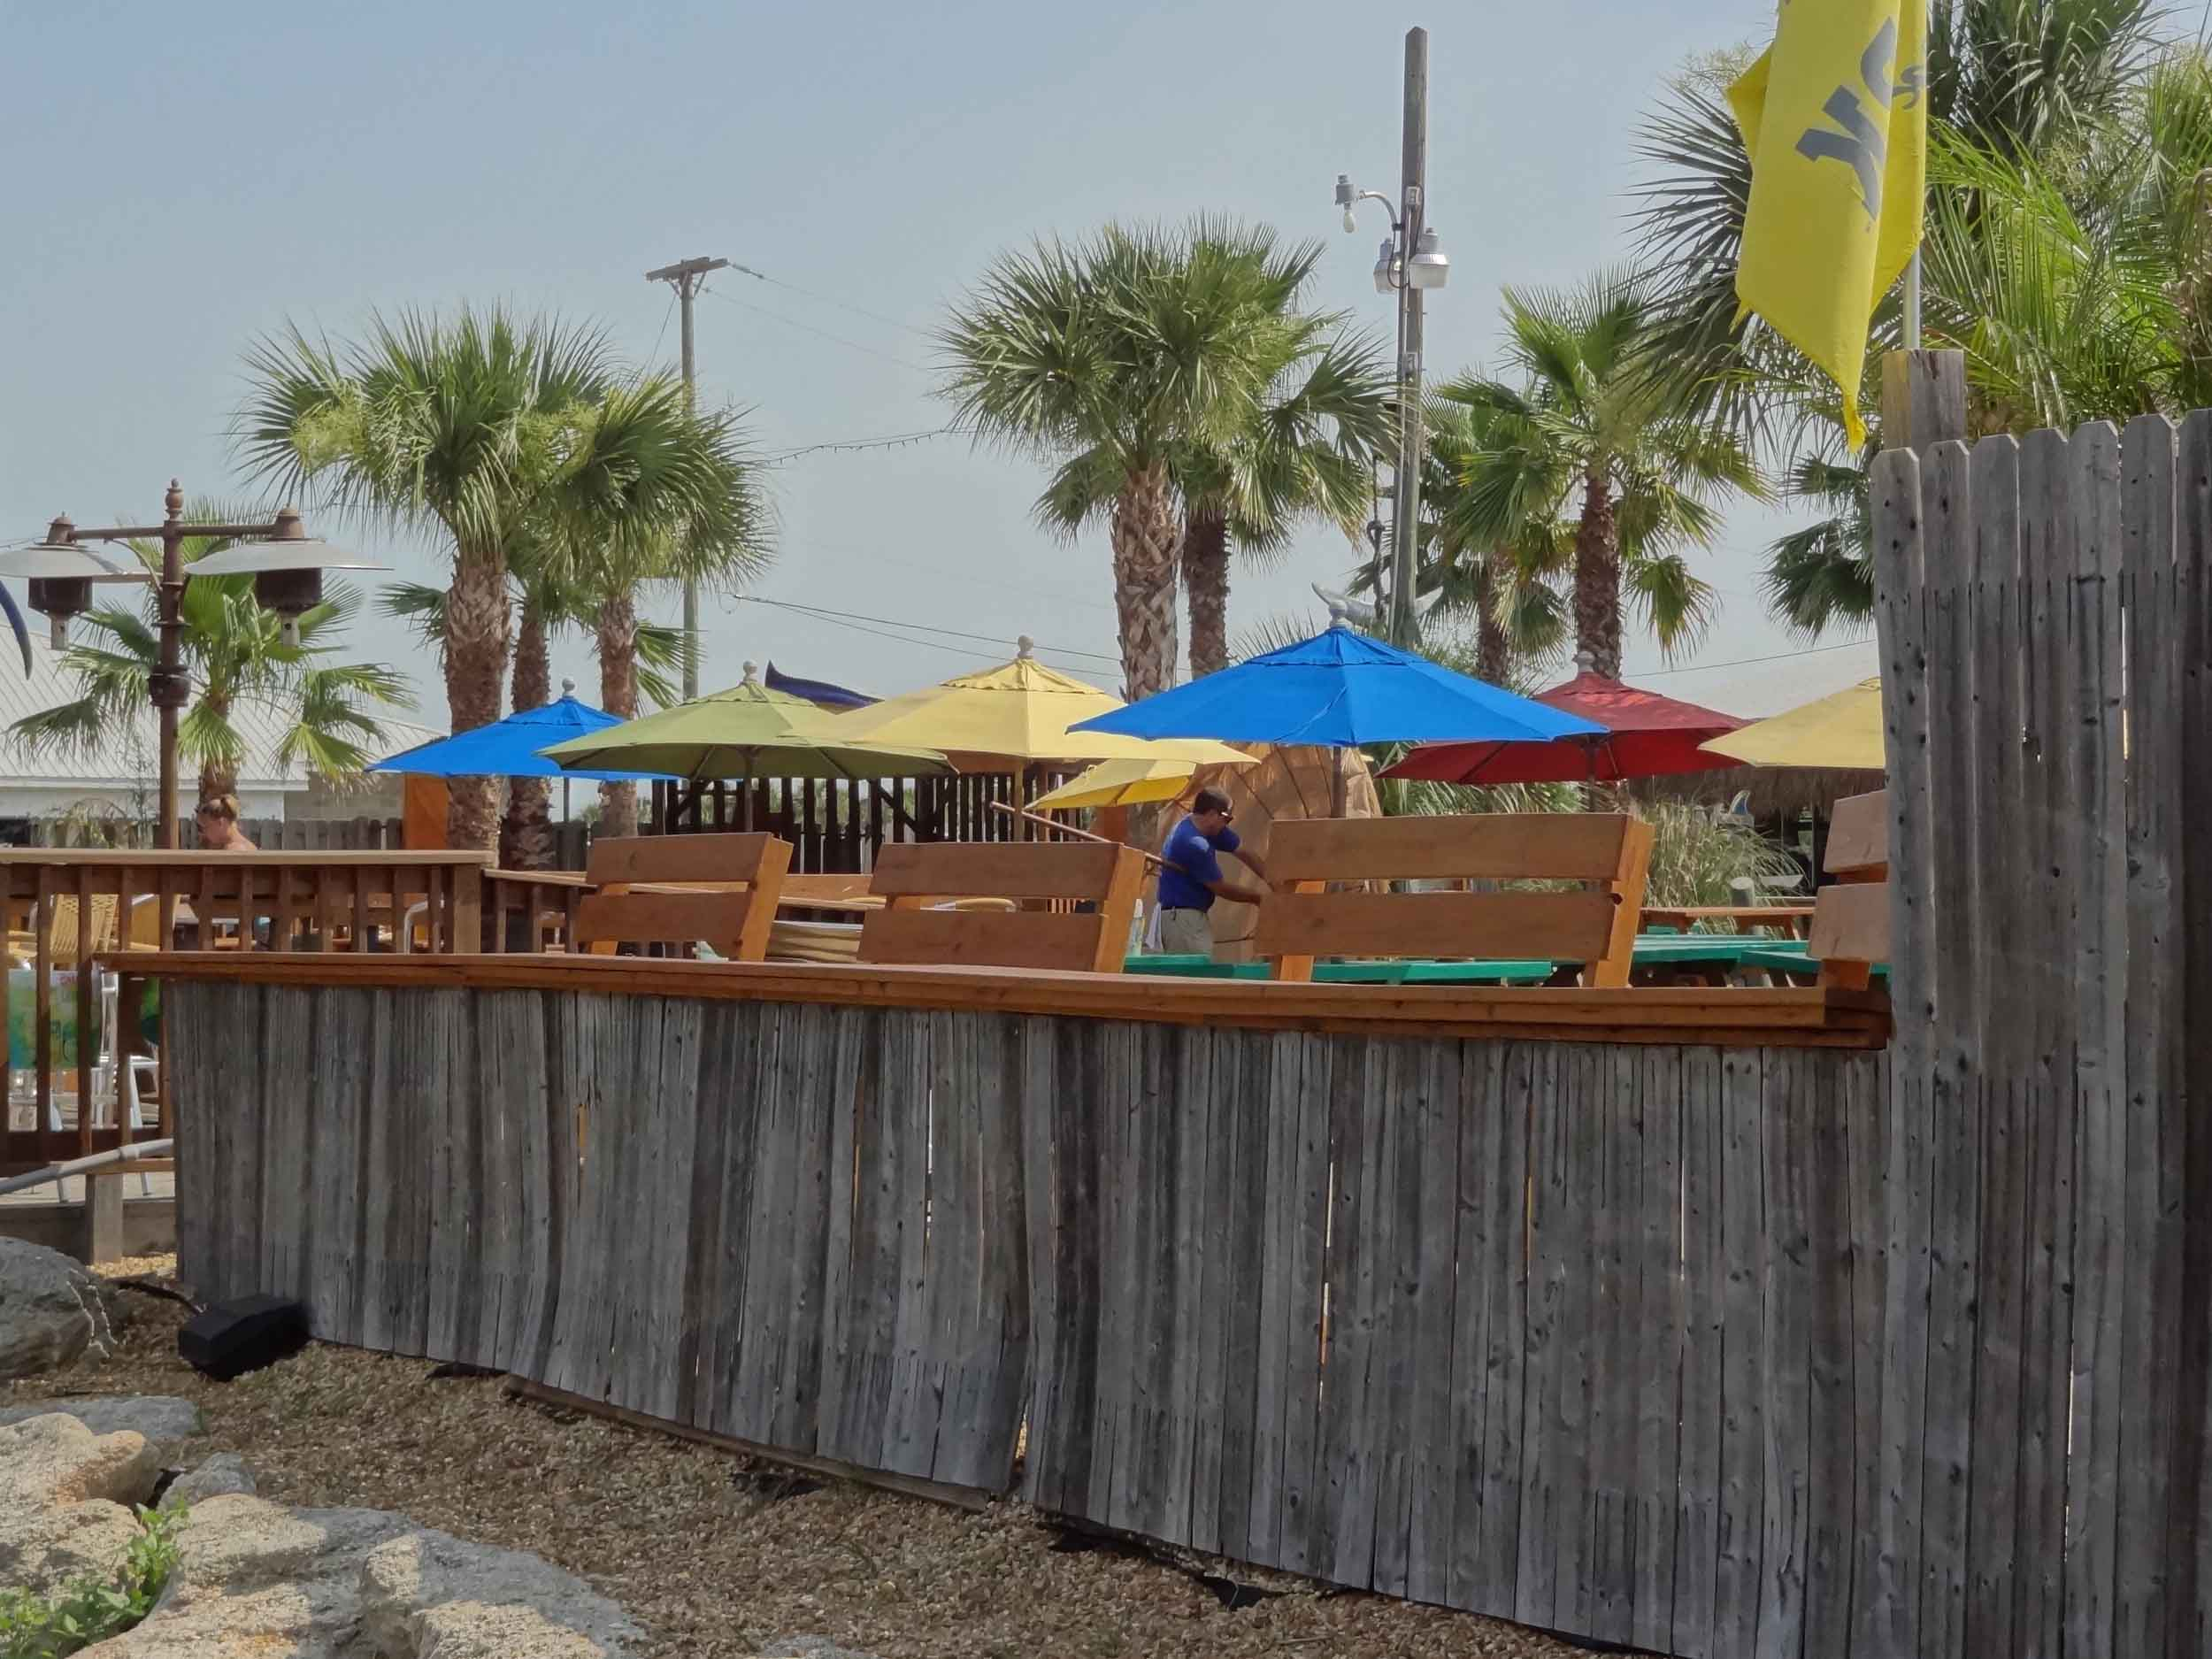 Hurricane Patty's Bar and Grill